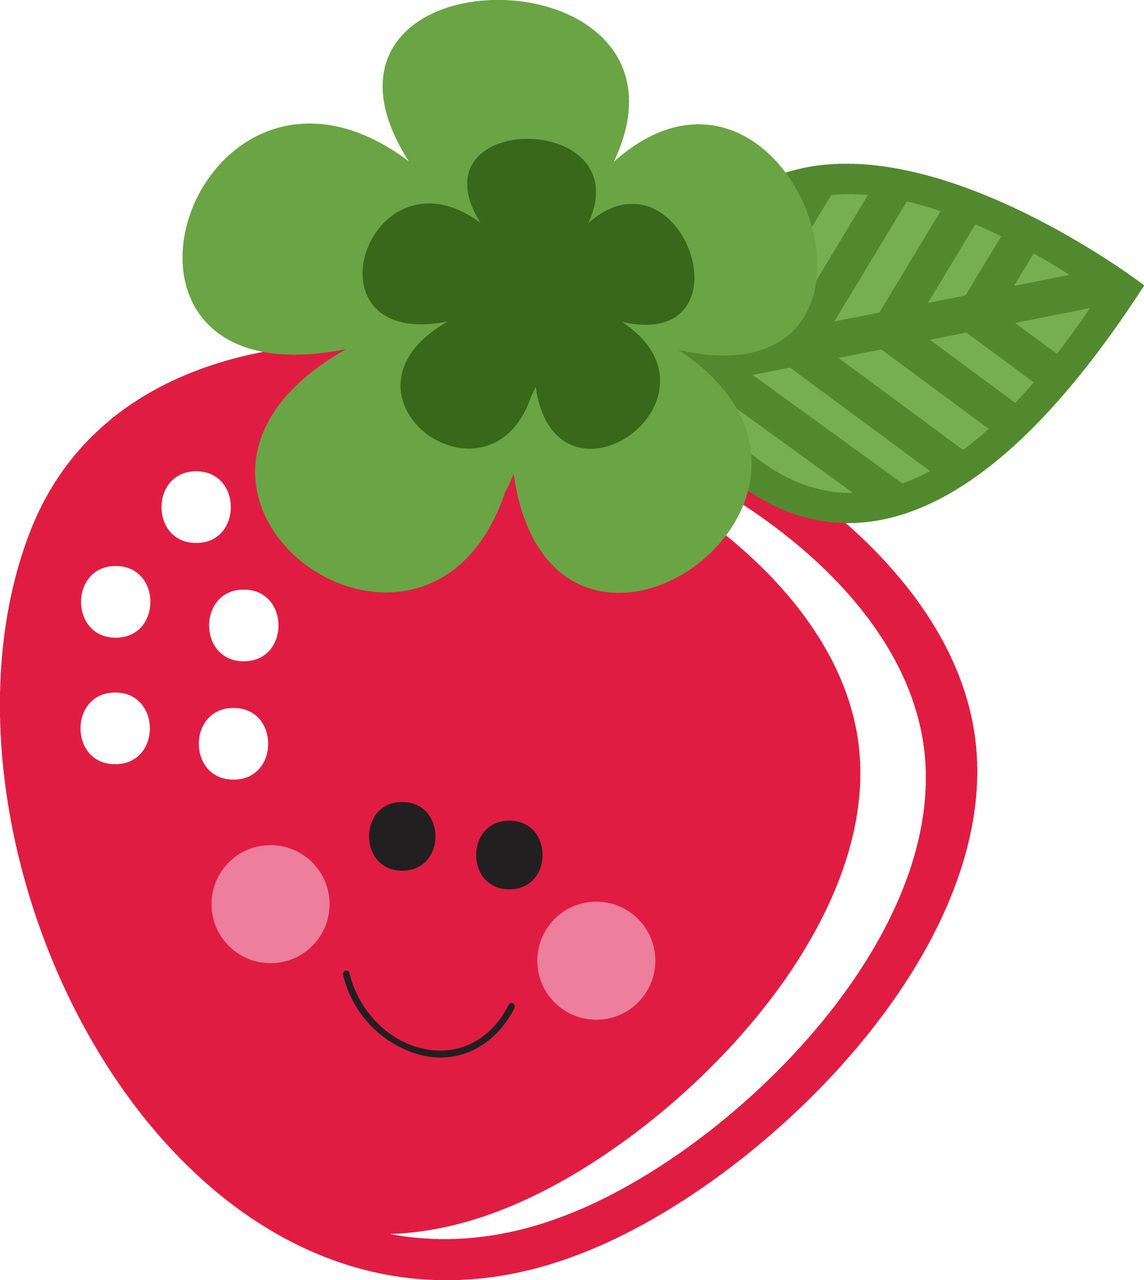 ppbn designs cute strawberry 0 50 http www ppbndesigns com rh pinterest ca strawberry clip art black and white strawberry clip art download